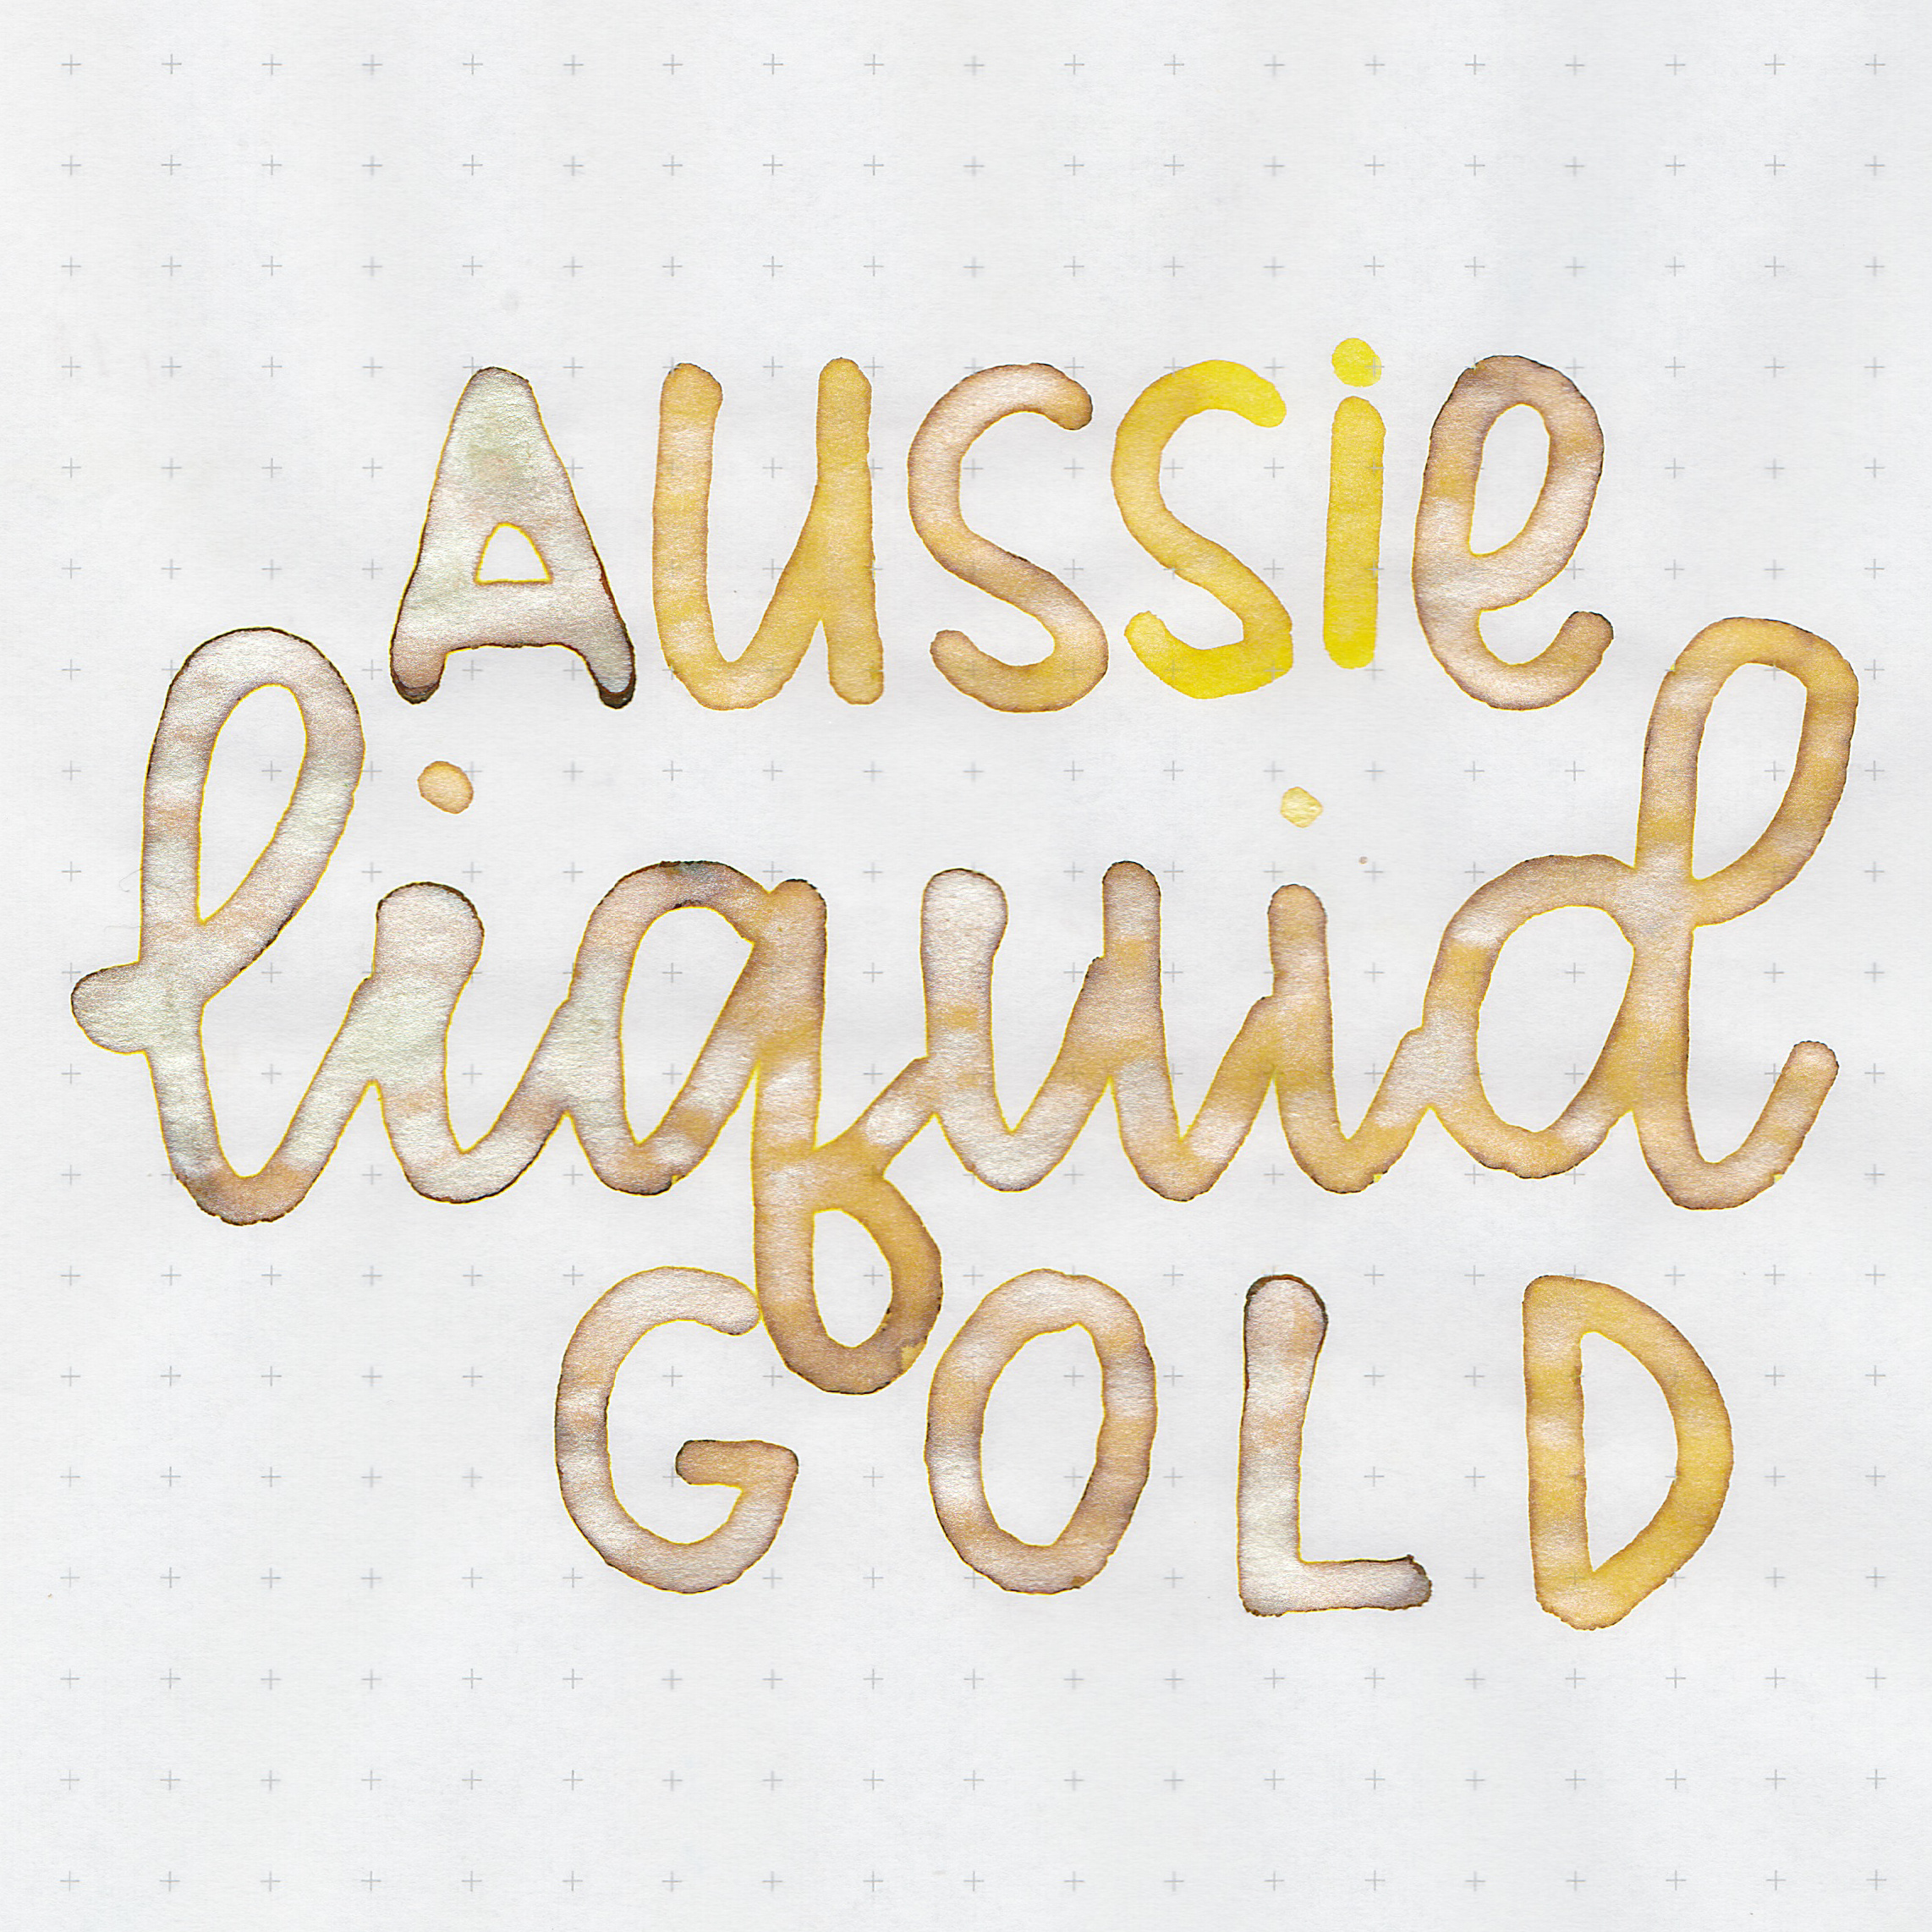 ro-aussie-liquid-gold-2.jpg